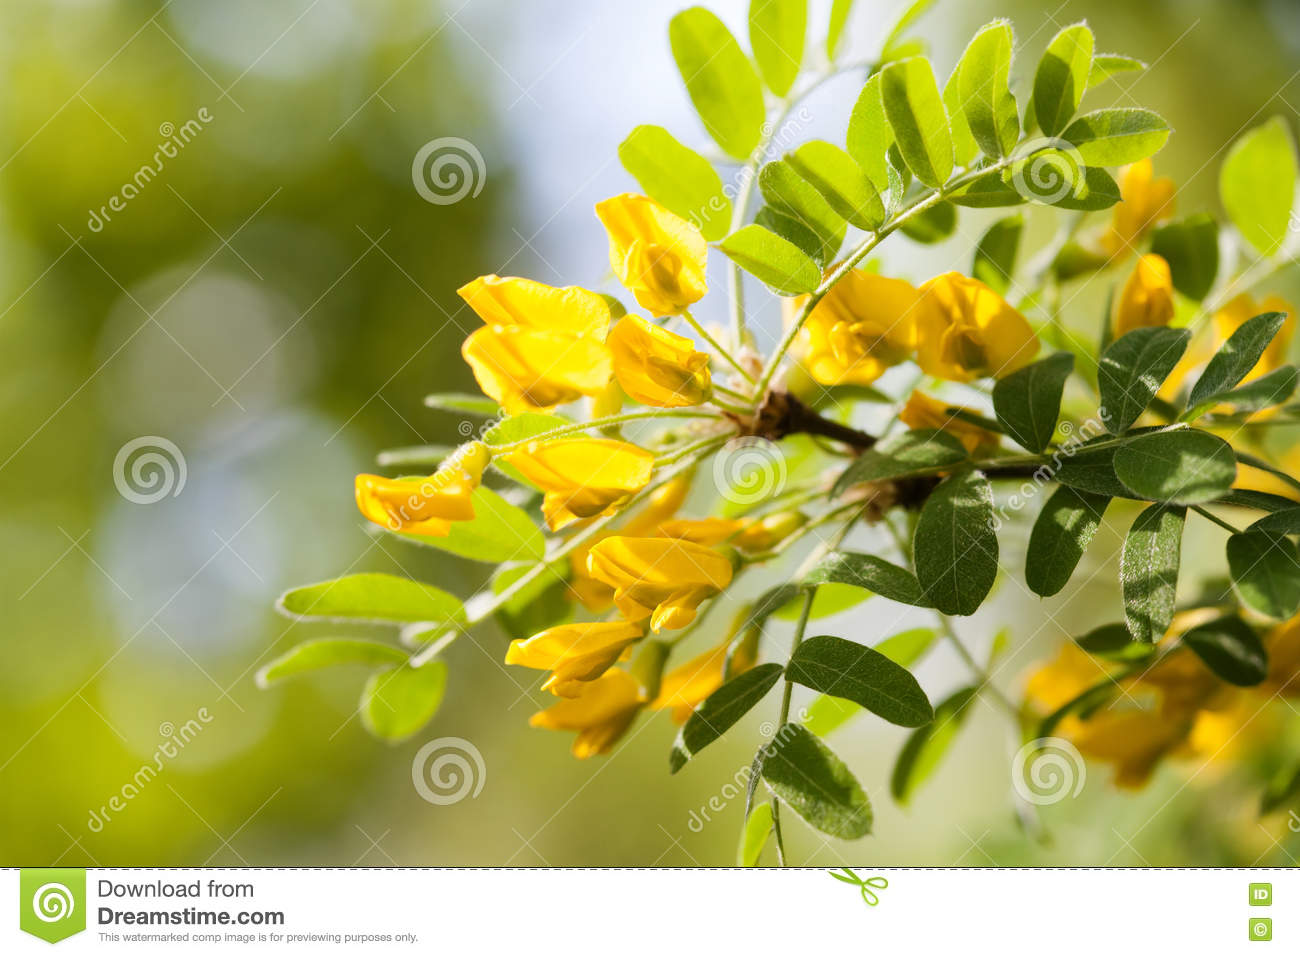 Acacia Tree Branch With Green Leaves And Yellow Flowers Blooming